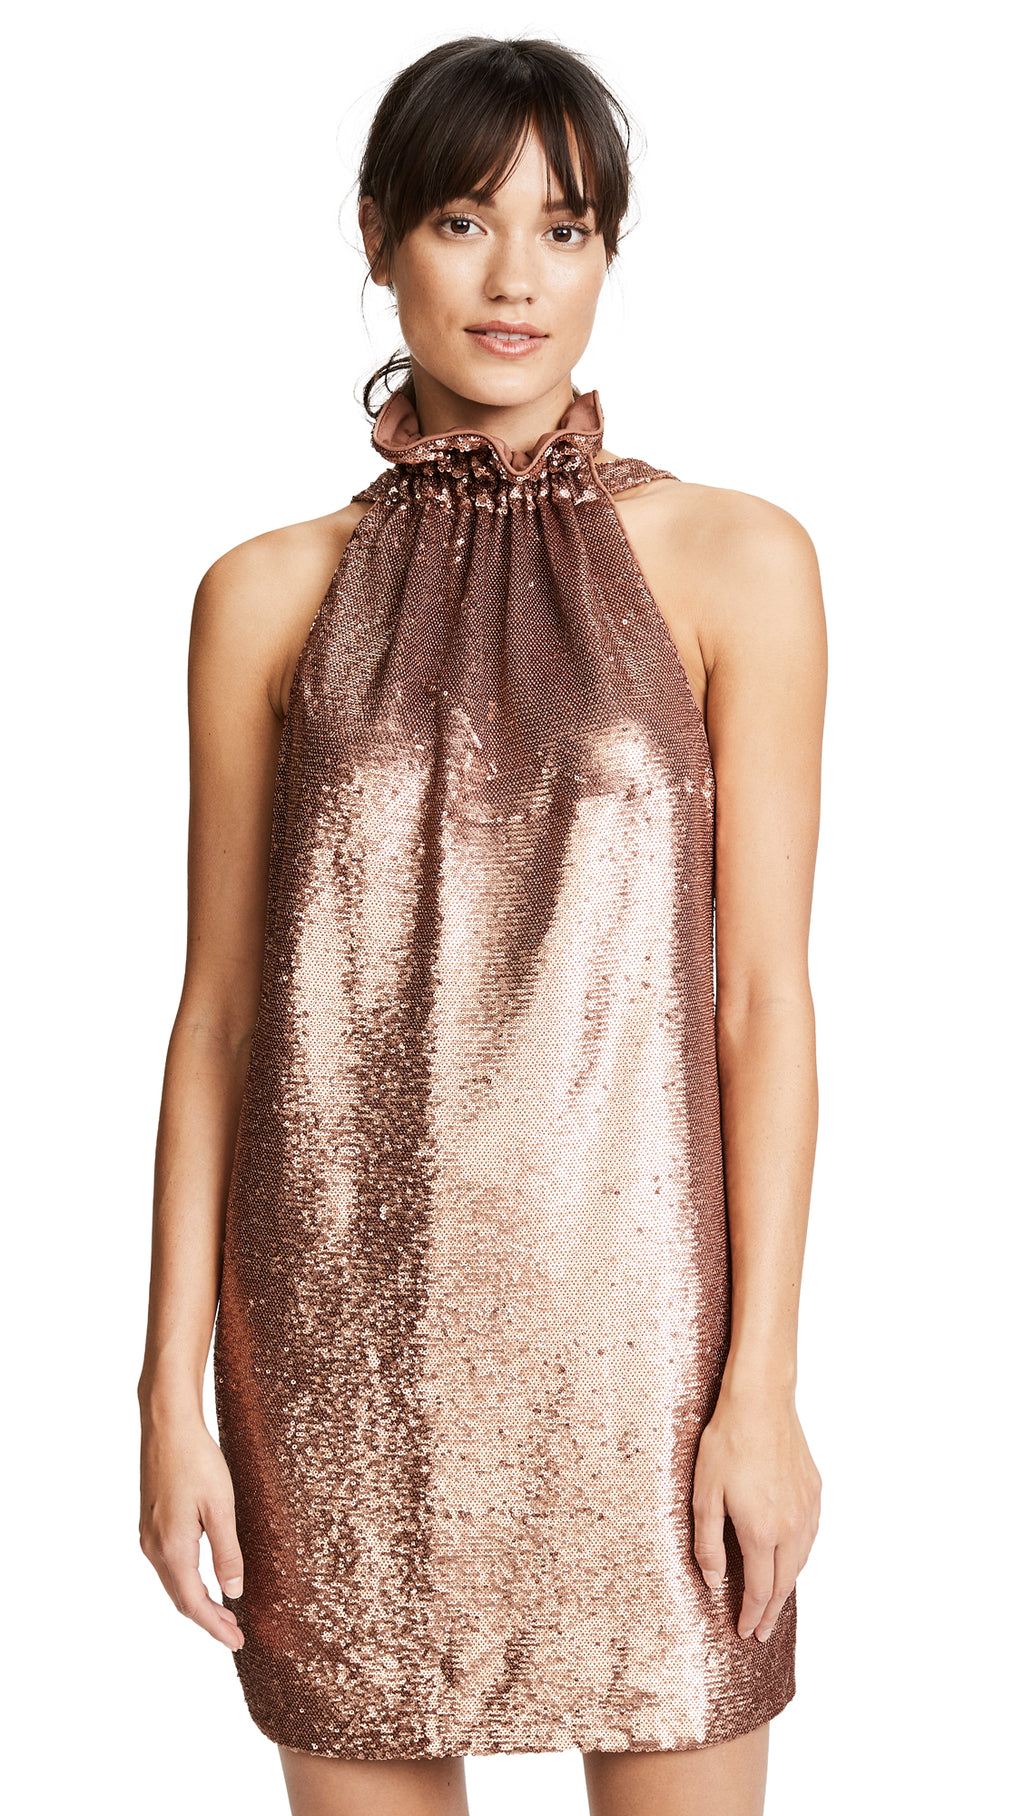 CMEO Illuminated Sequin Dress